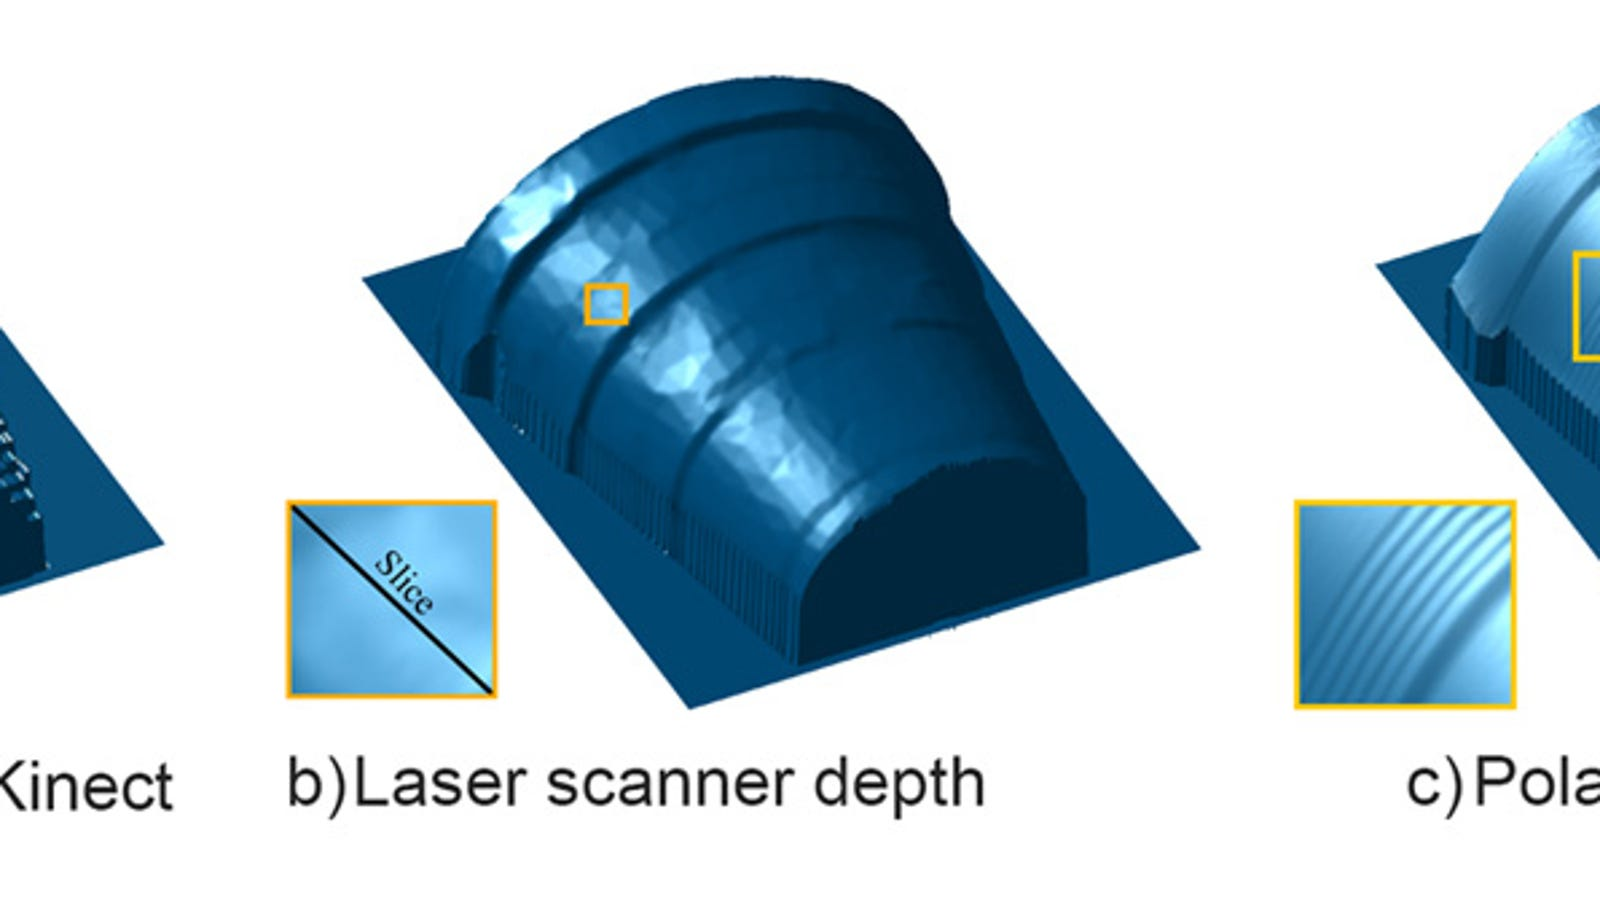 MIT Figured Out How to Make Cheap 3D Scanners 1,000 Times Better